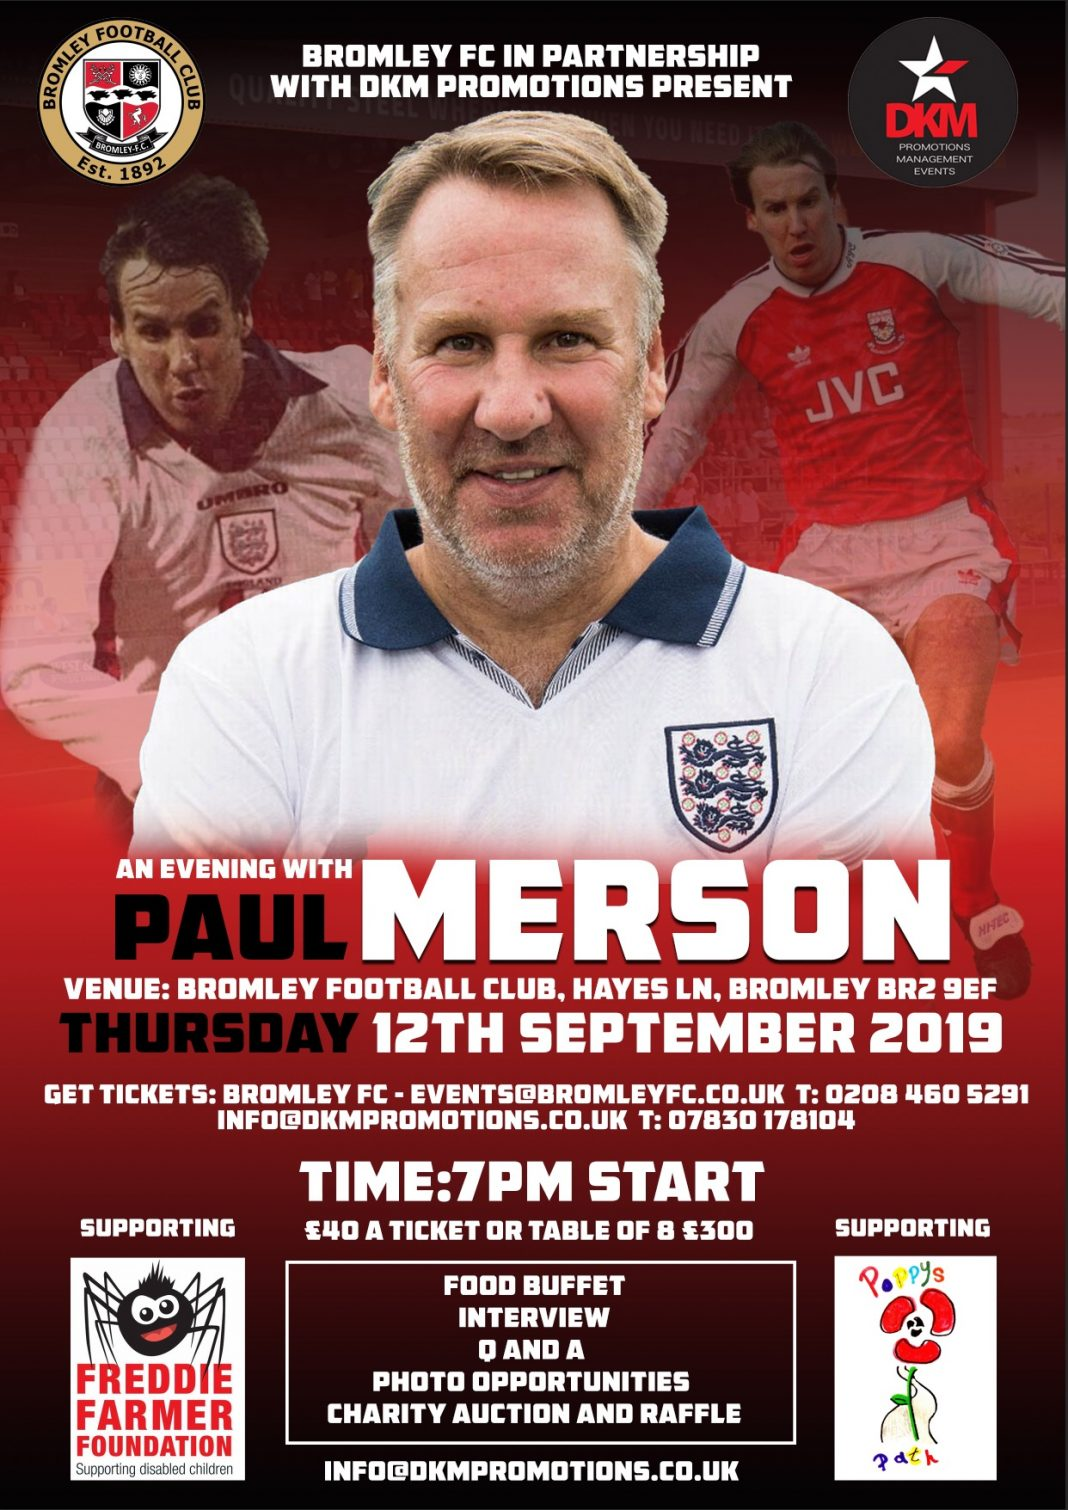 An evening with Paul Merson at Bromley FC